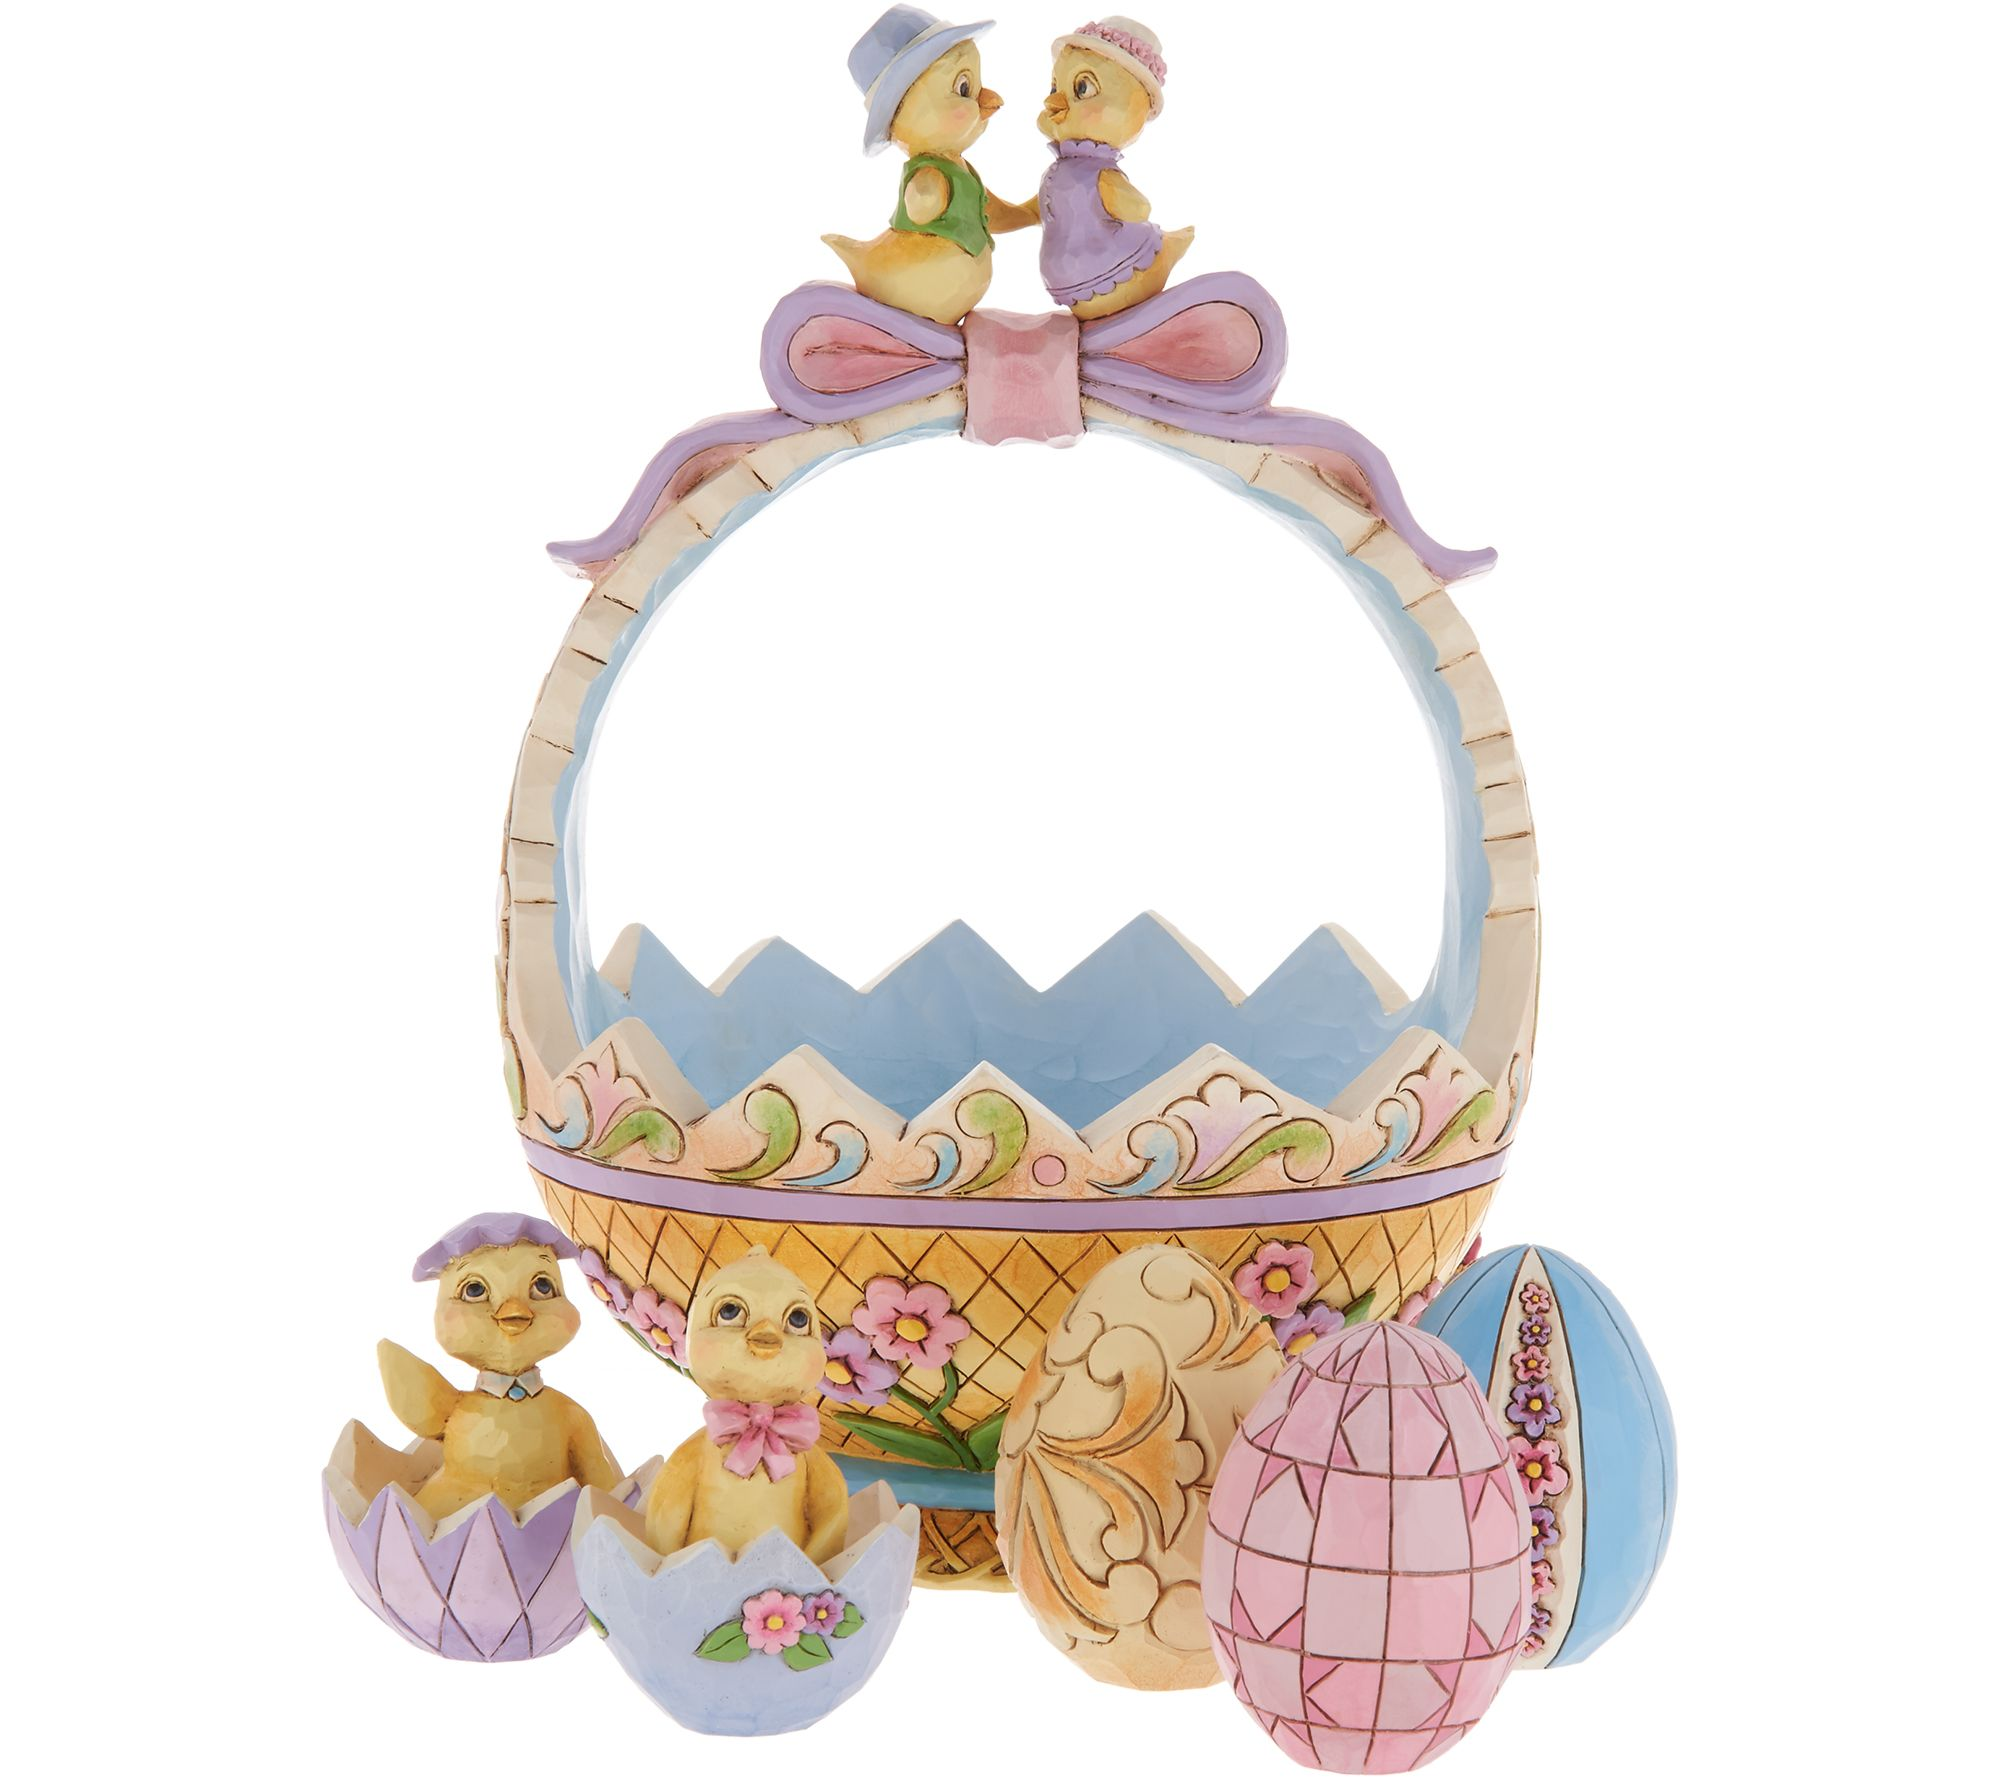 Jim shore exclusive 13th annual easter basket weggs chicks jim shore exclusive 13th annual easter basket weggs chicks page 1 qvc negle Choice Image